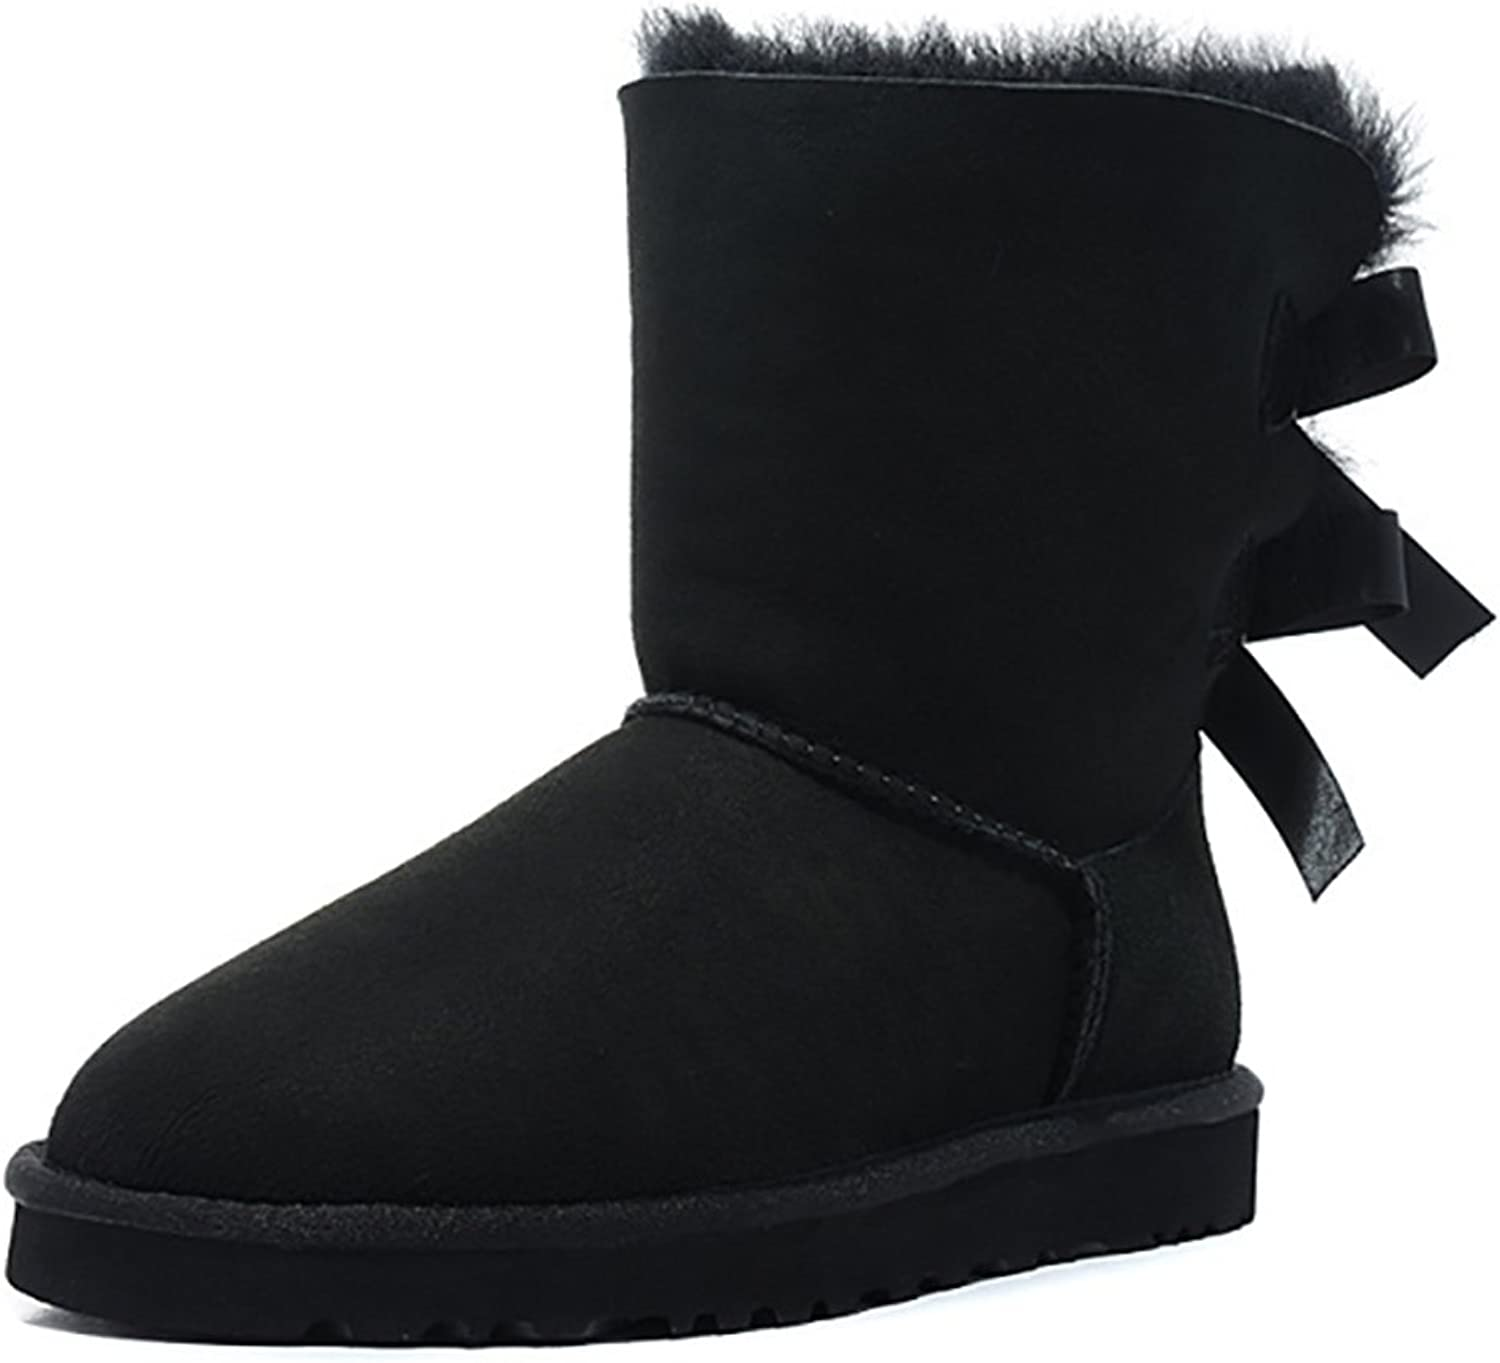 VOCOSI Women's Comfy Winter Faux Furry Leather Ankle Booties Bowknot Low Heels Snow Boots shoes